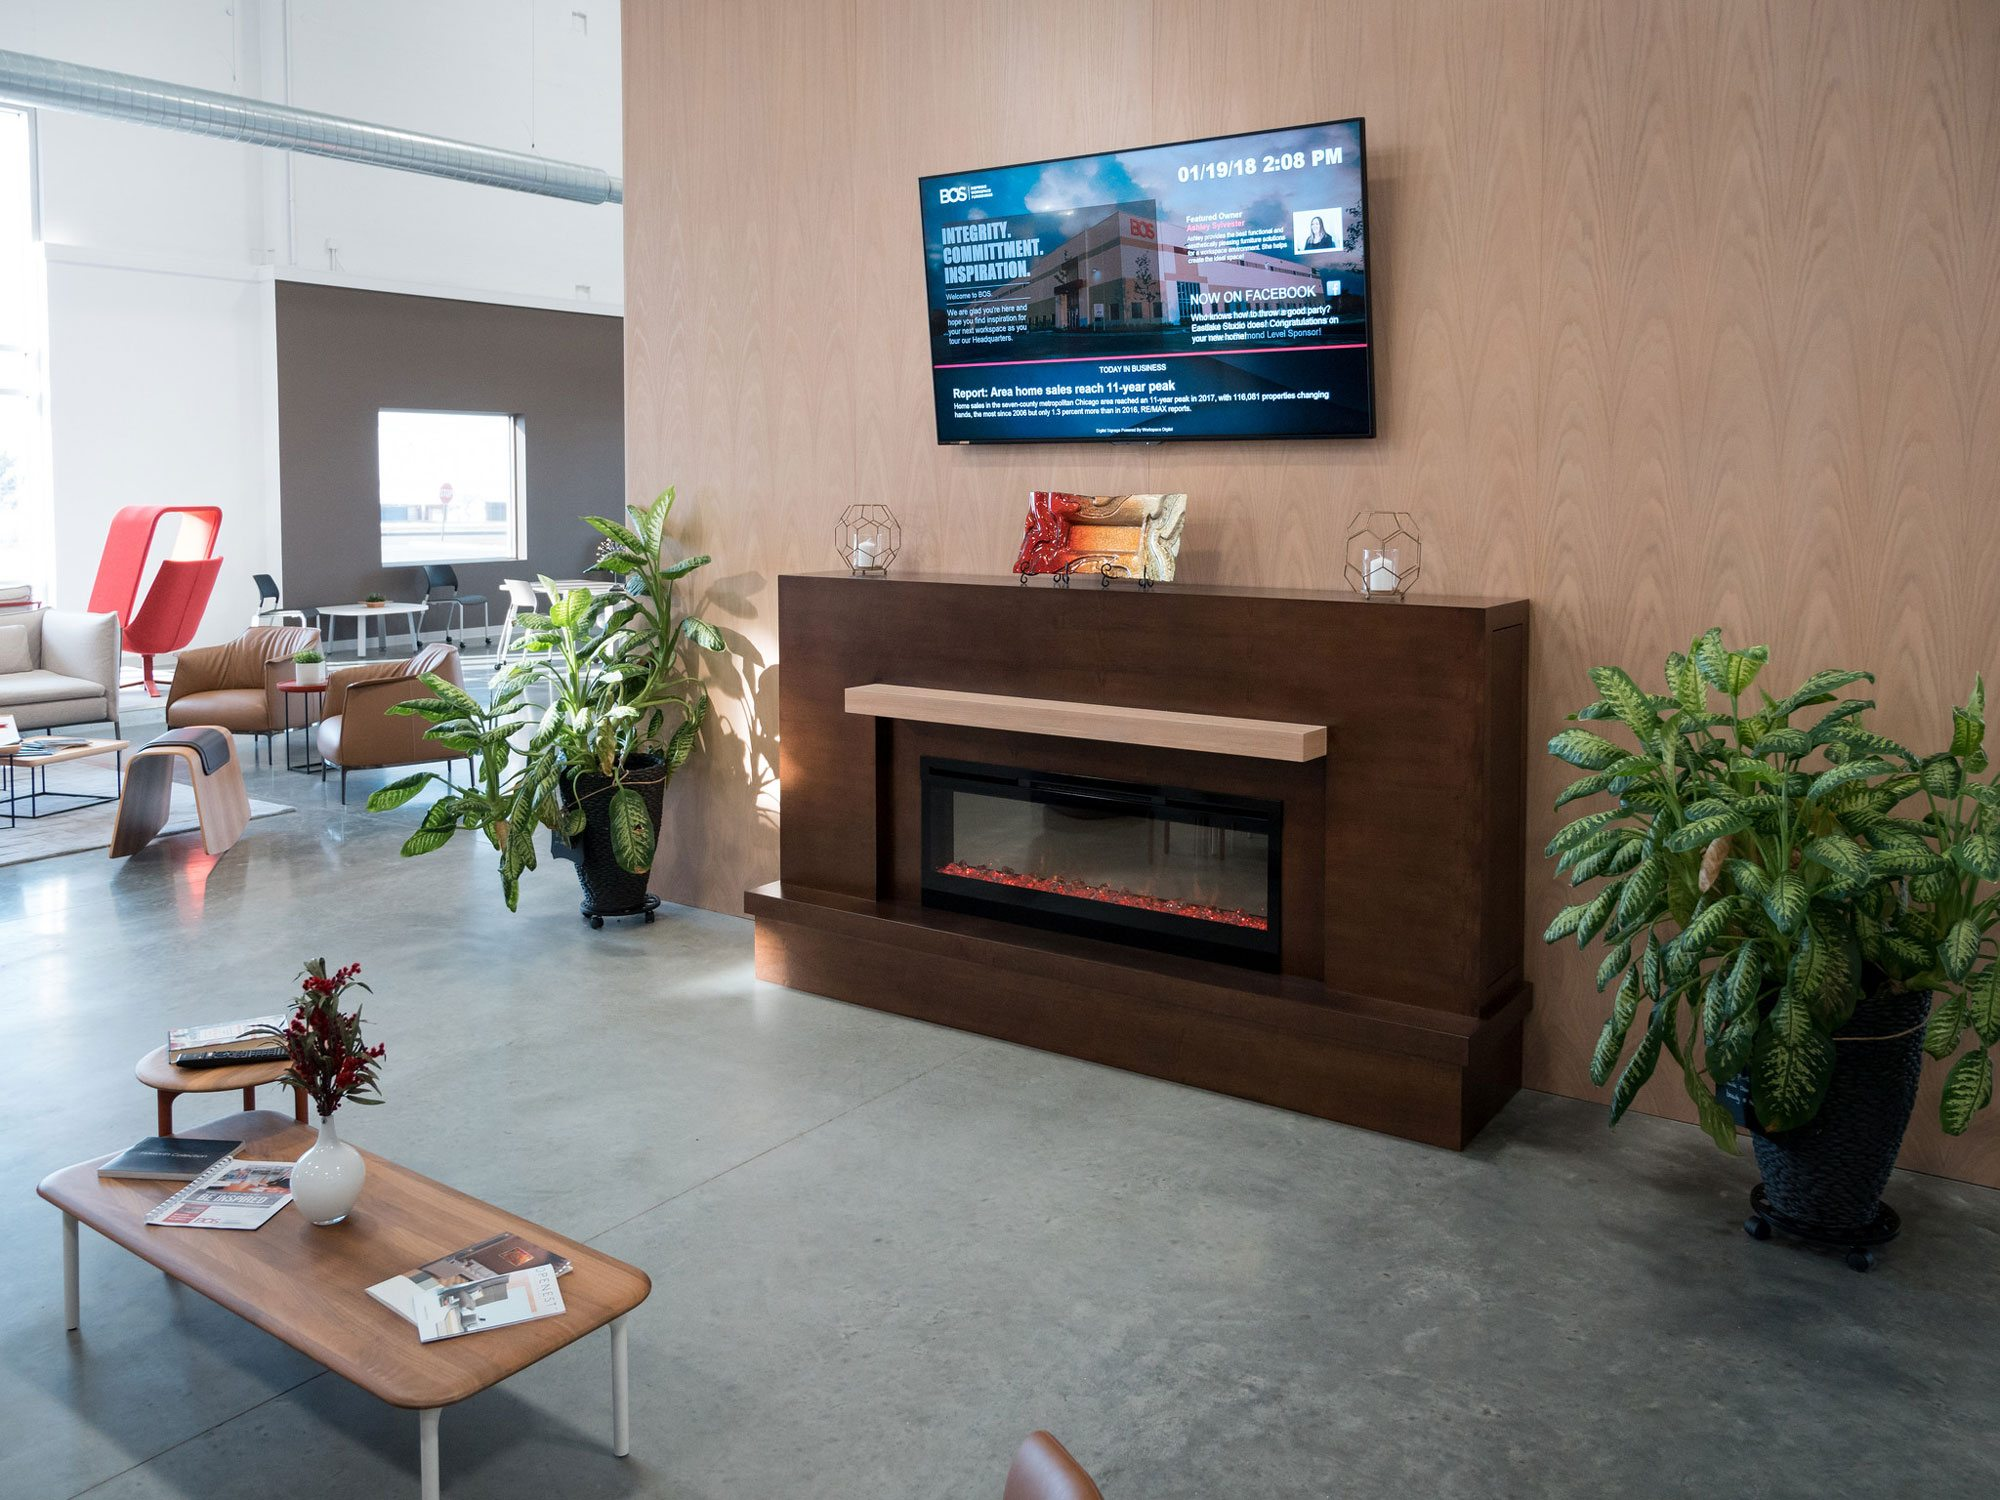 Five Ways to Create A Better Place to Work with Digital Signage